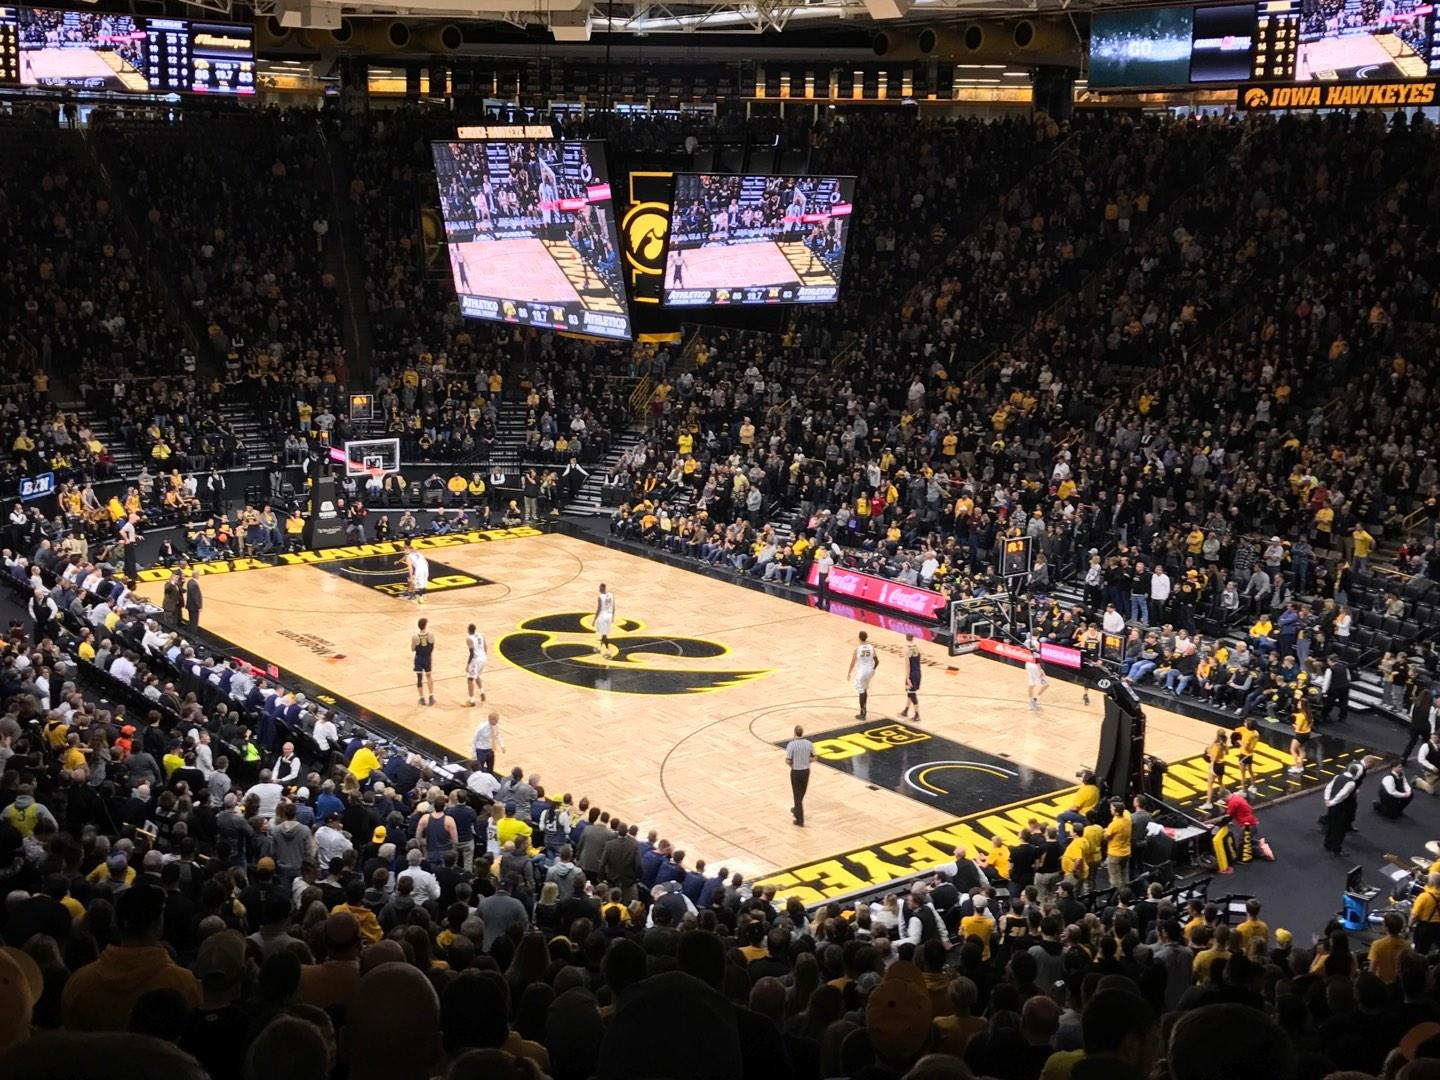 Carver-Hawkeye Arena Section E Row 32 Seat 5